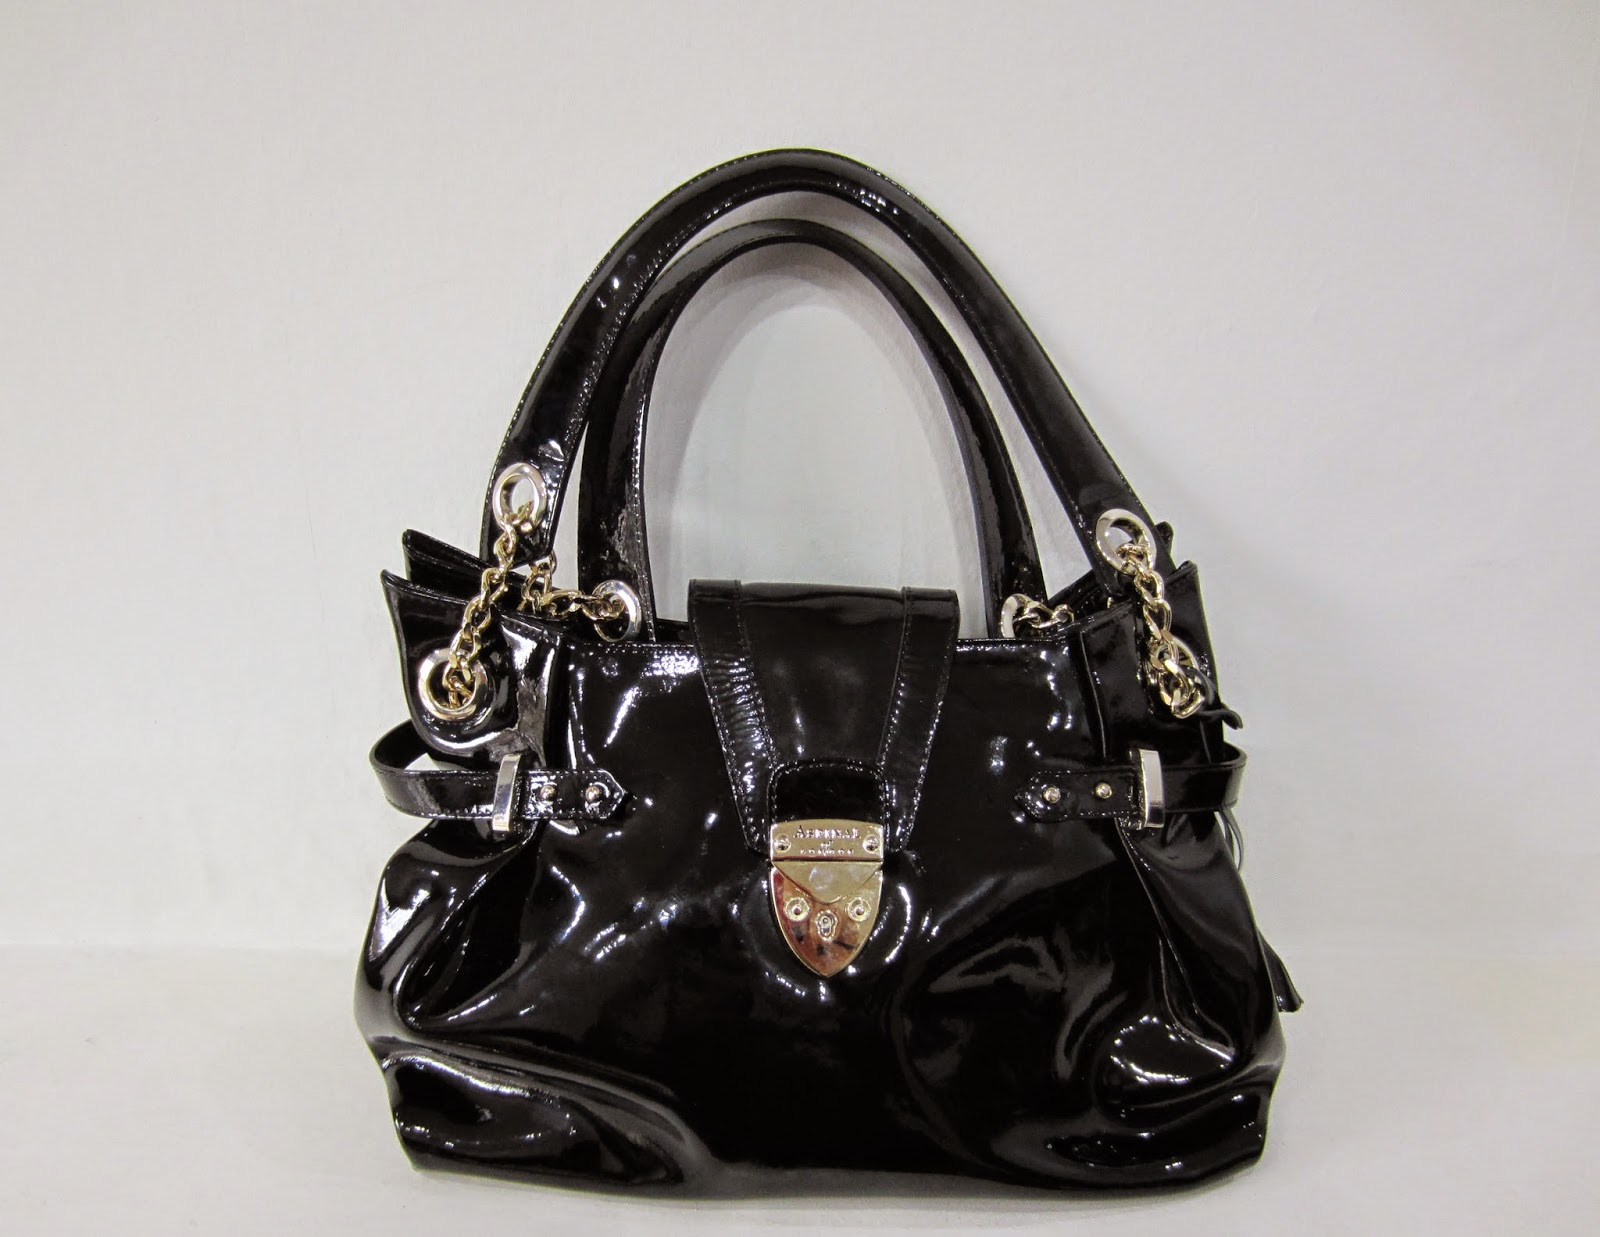 Aspinal of London Black Patent Barbarella Bag